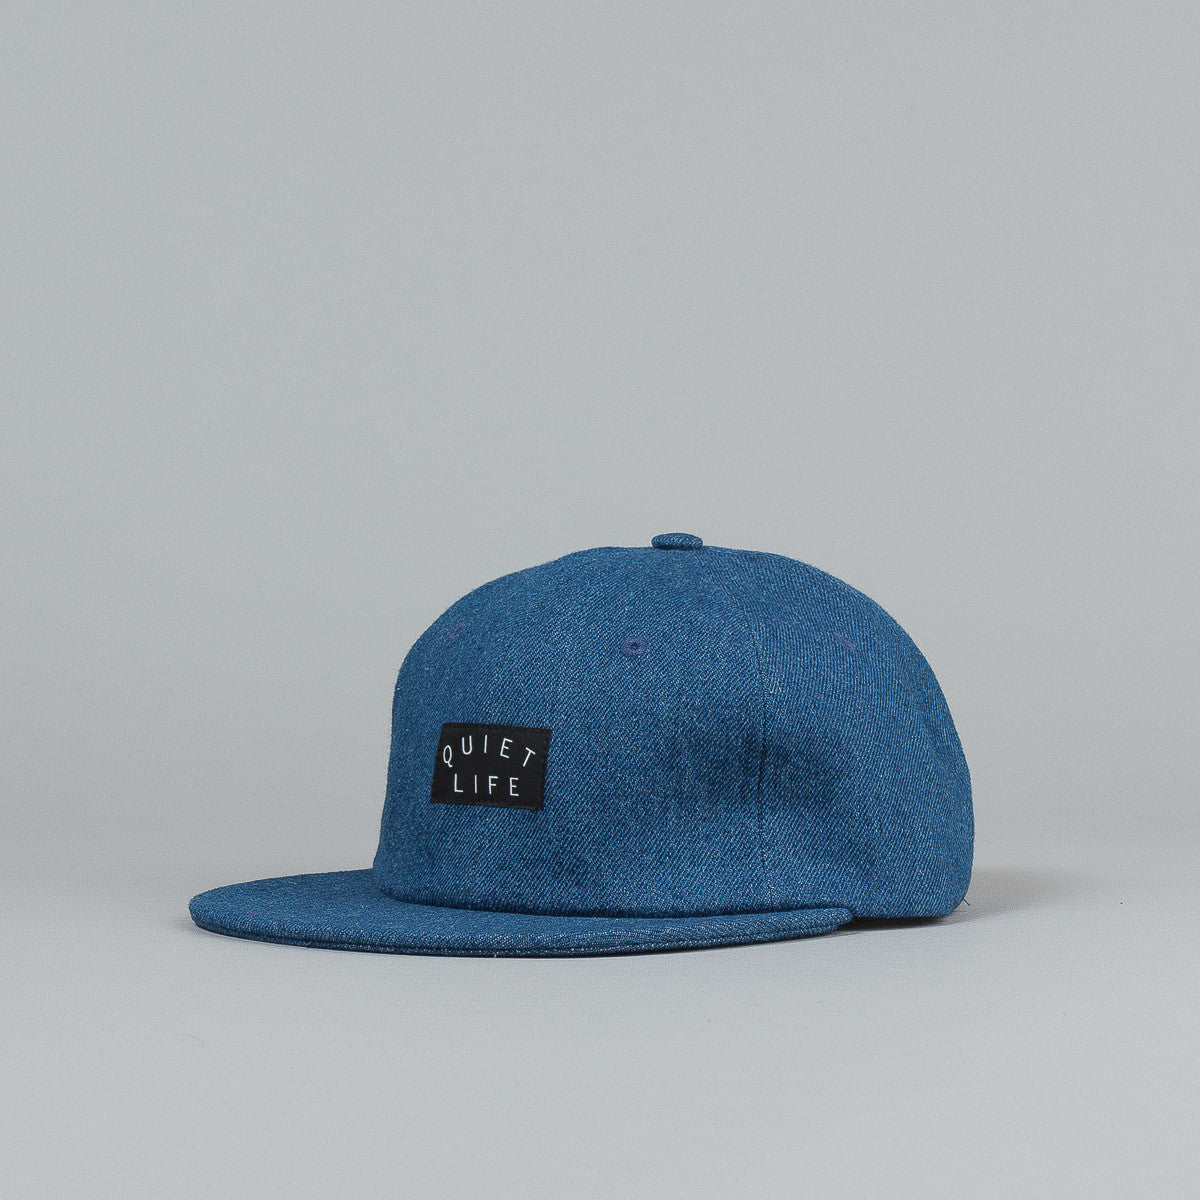 The Quiet Life Denim Polo Cap